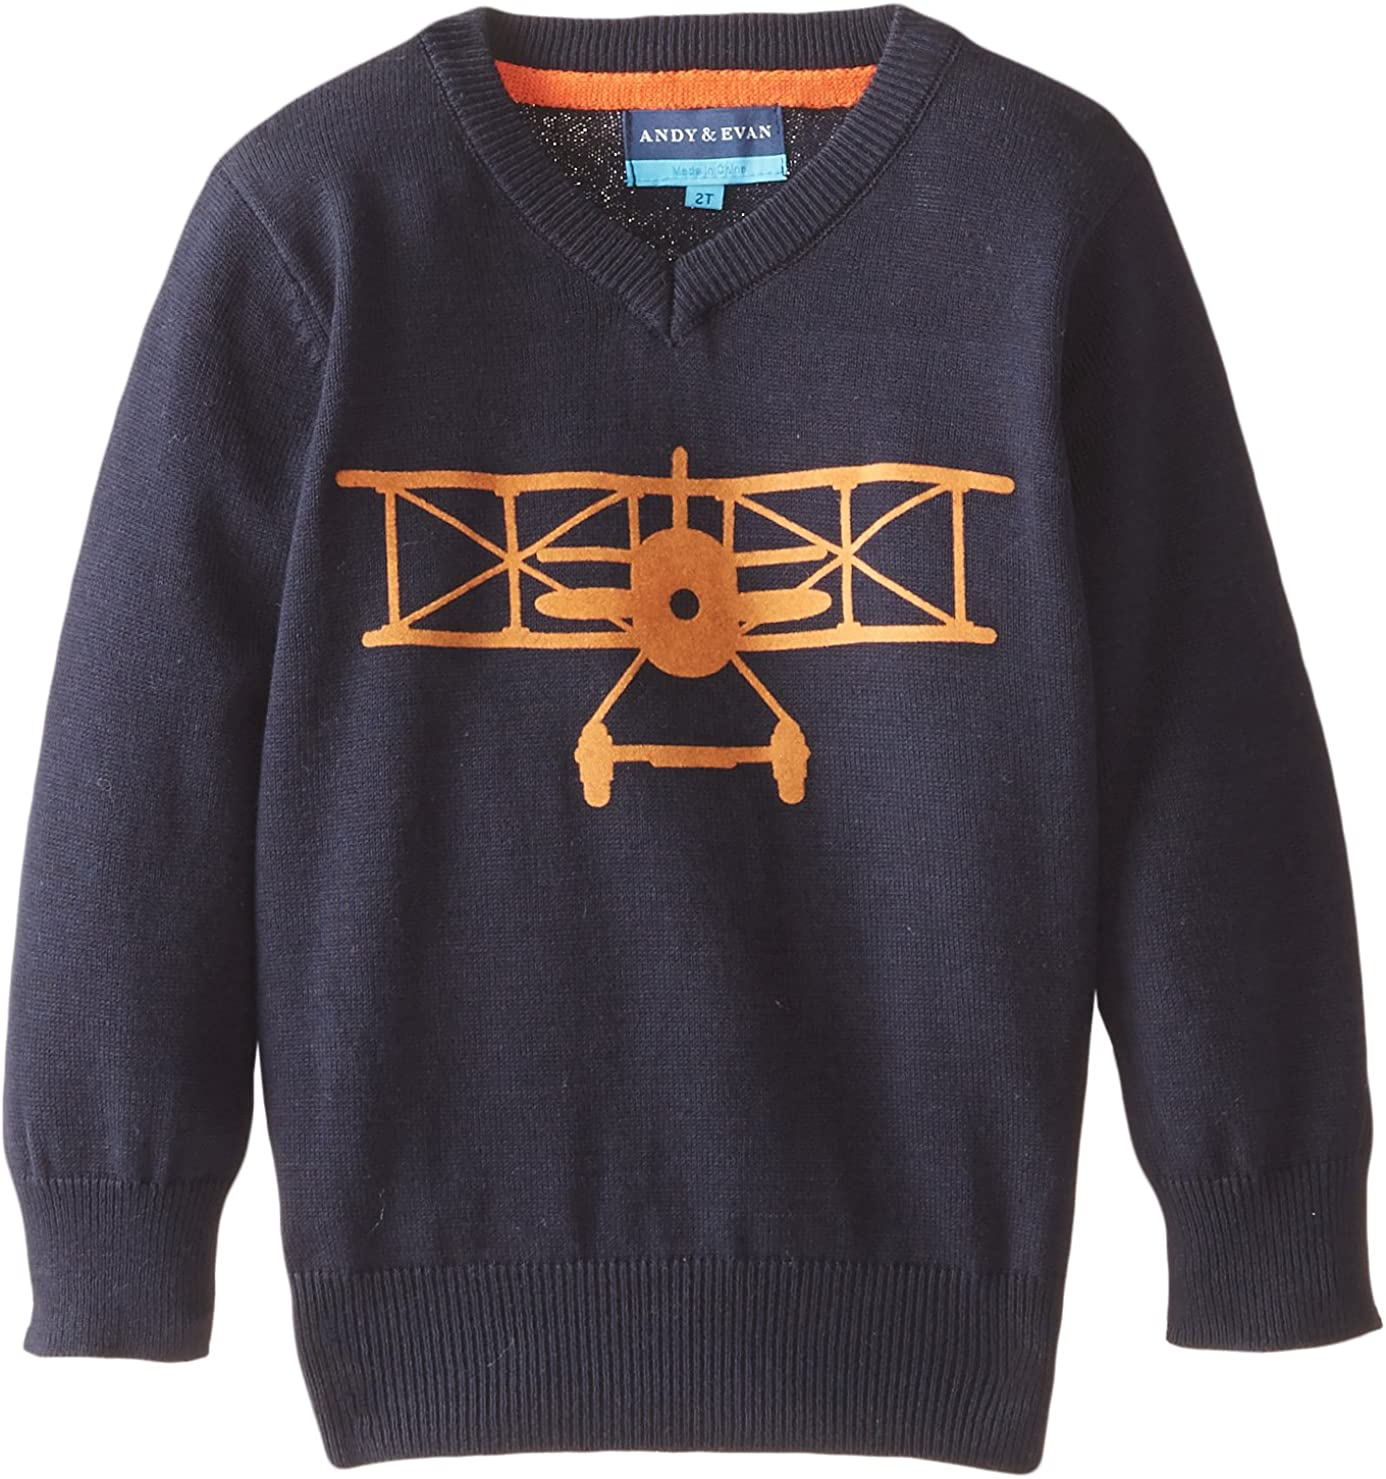 Andy & Evan Little Boys' Navy Airplane Sweater